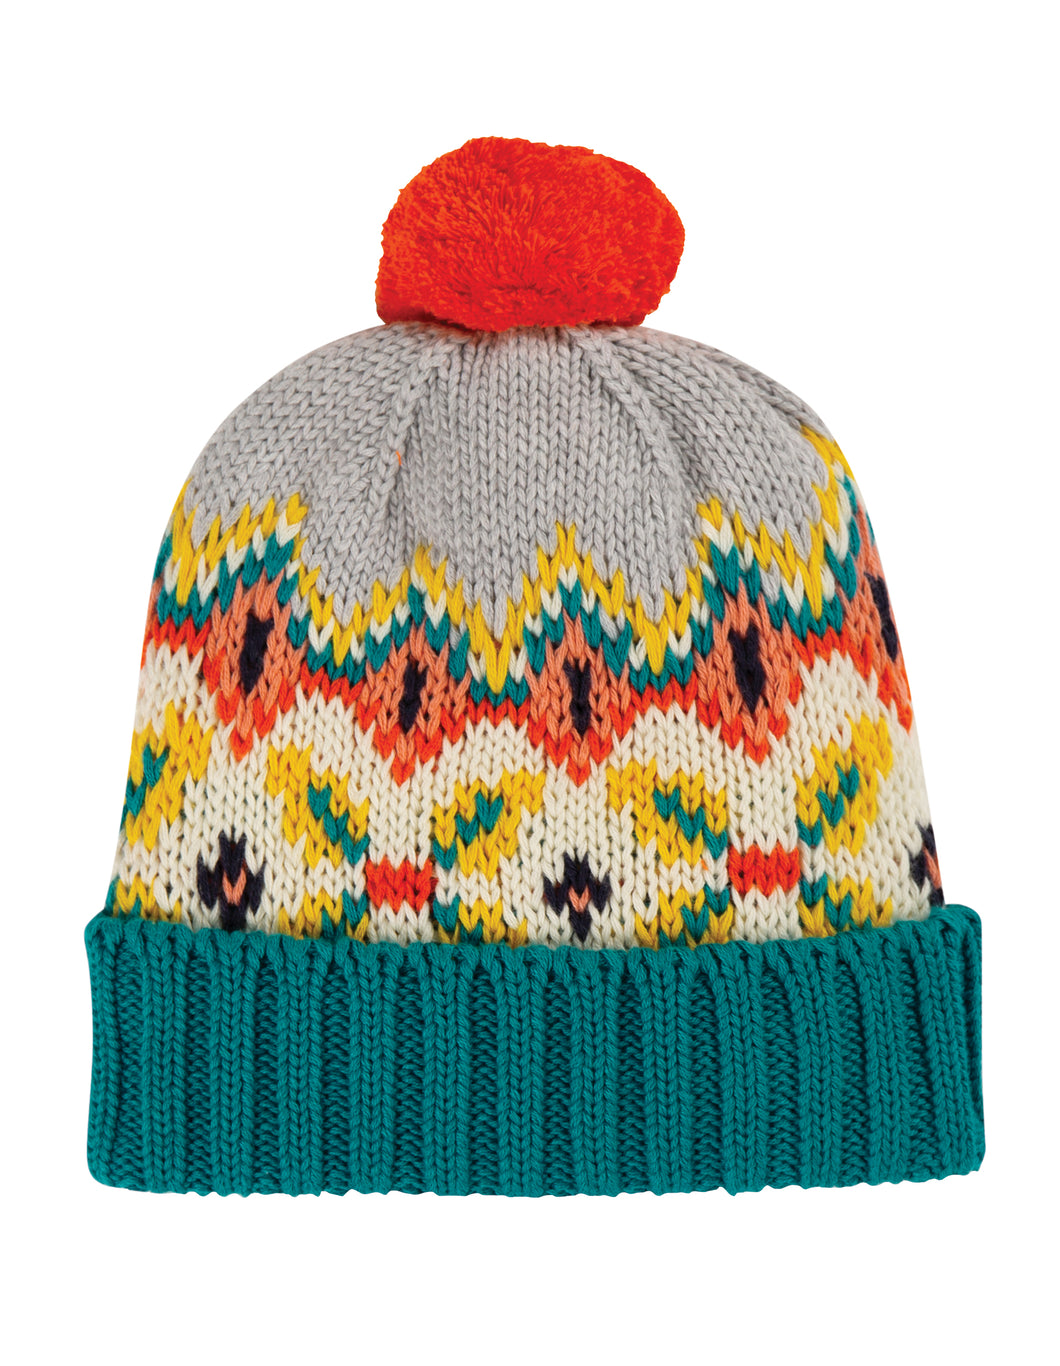 Blizzard Bobble Hat - Tin Roof Fairisle